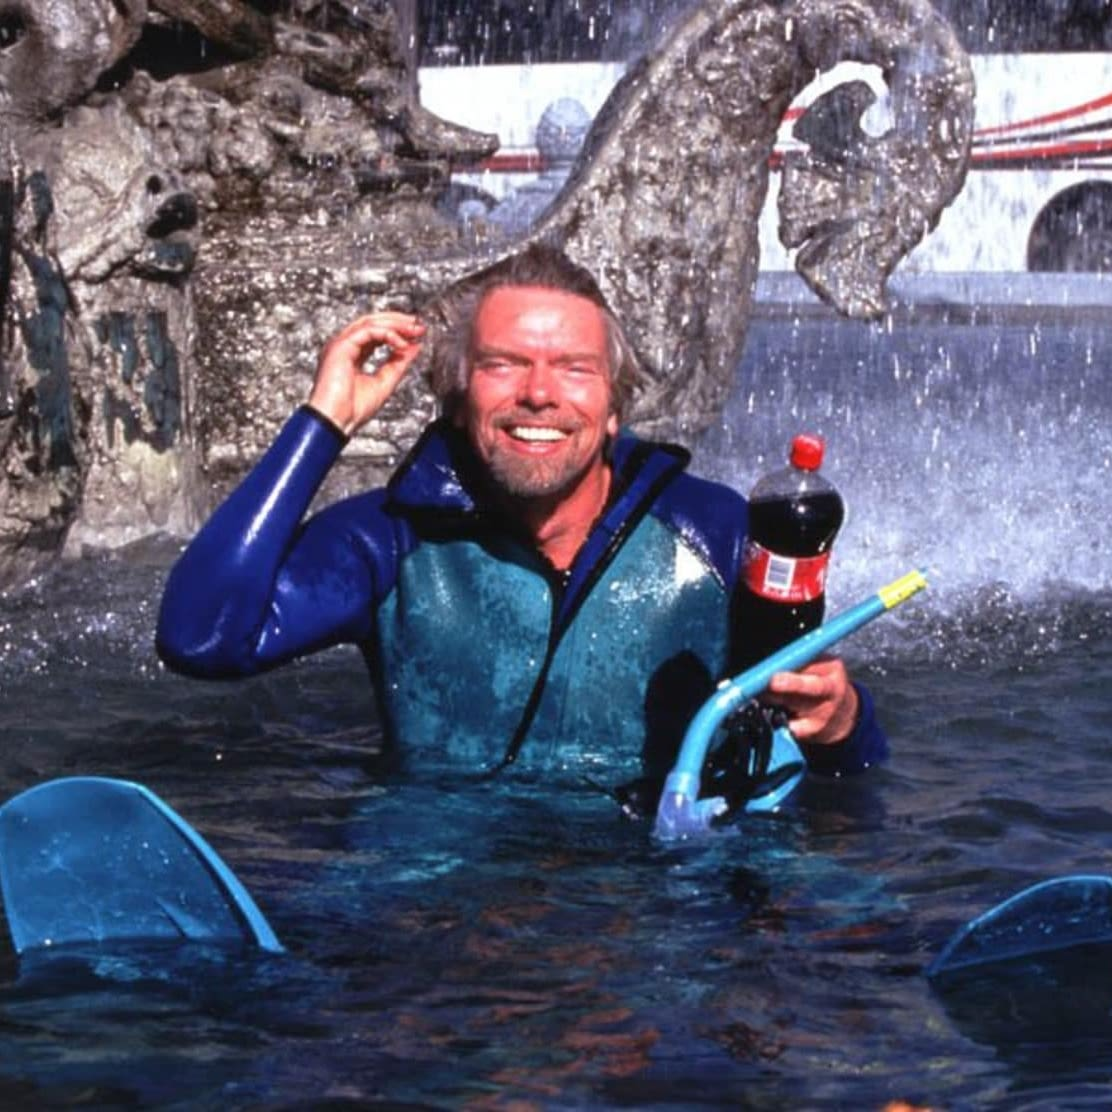 Richard Branson in a wet suit sitting in a fountain with a Virgin Cola bottle